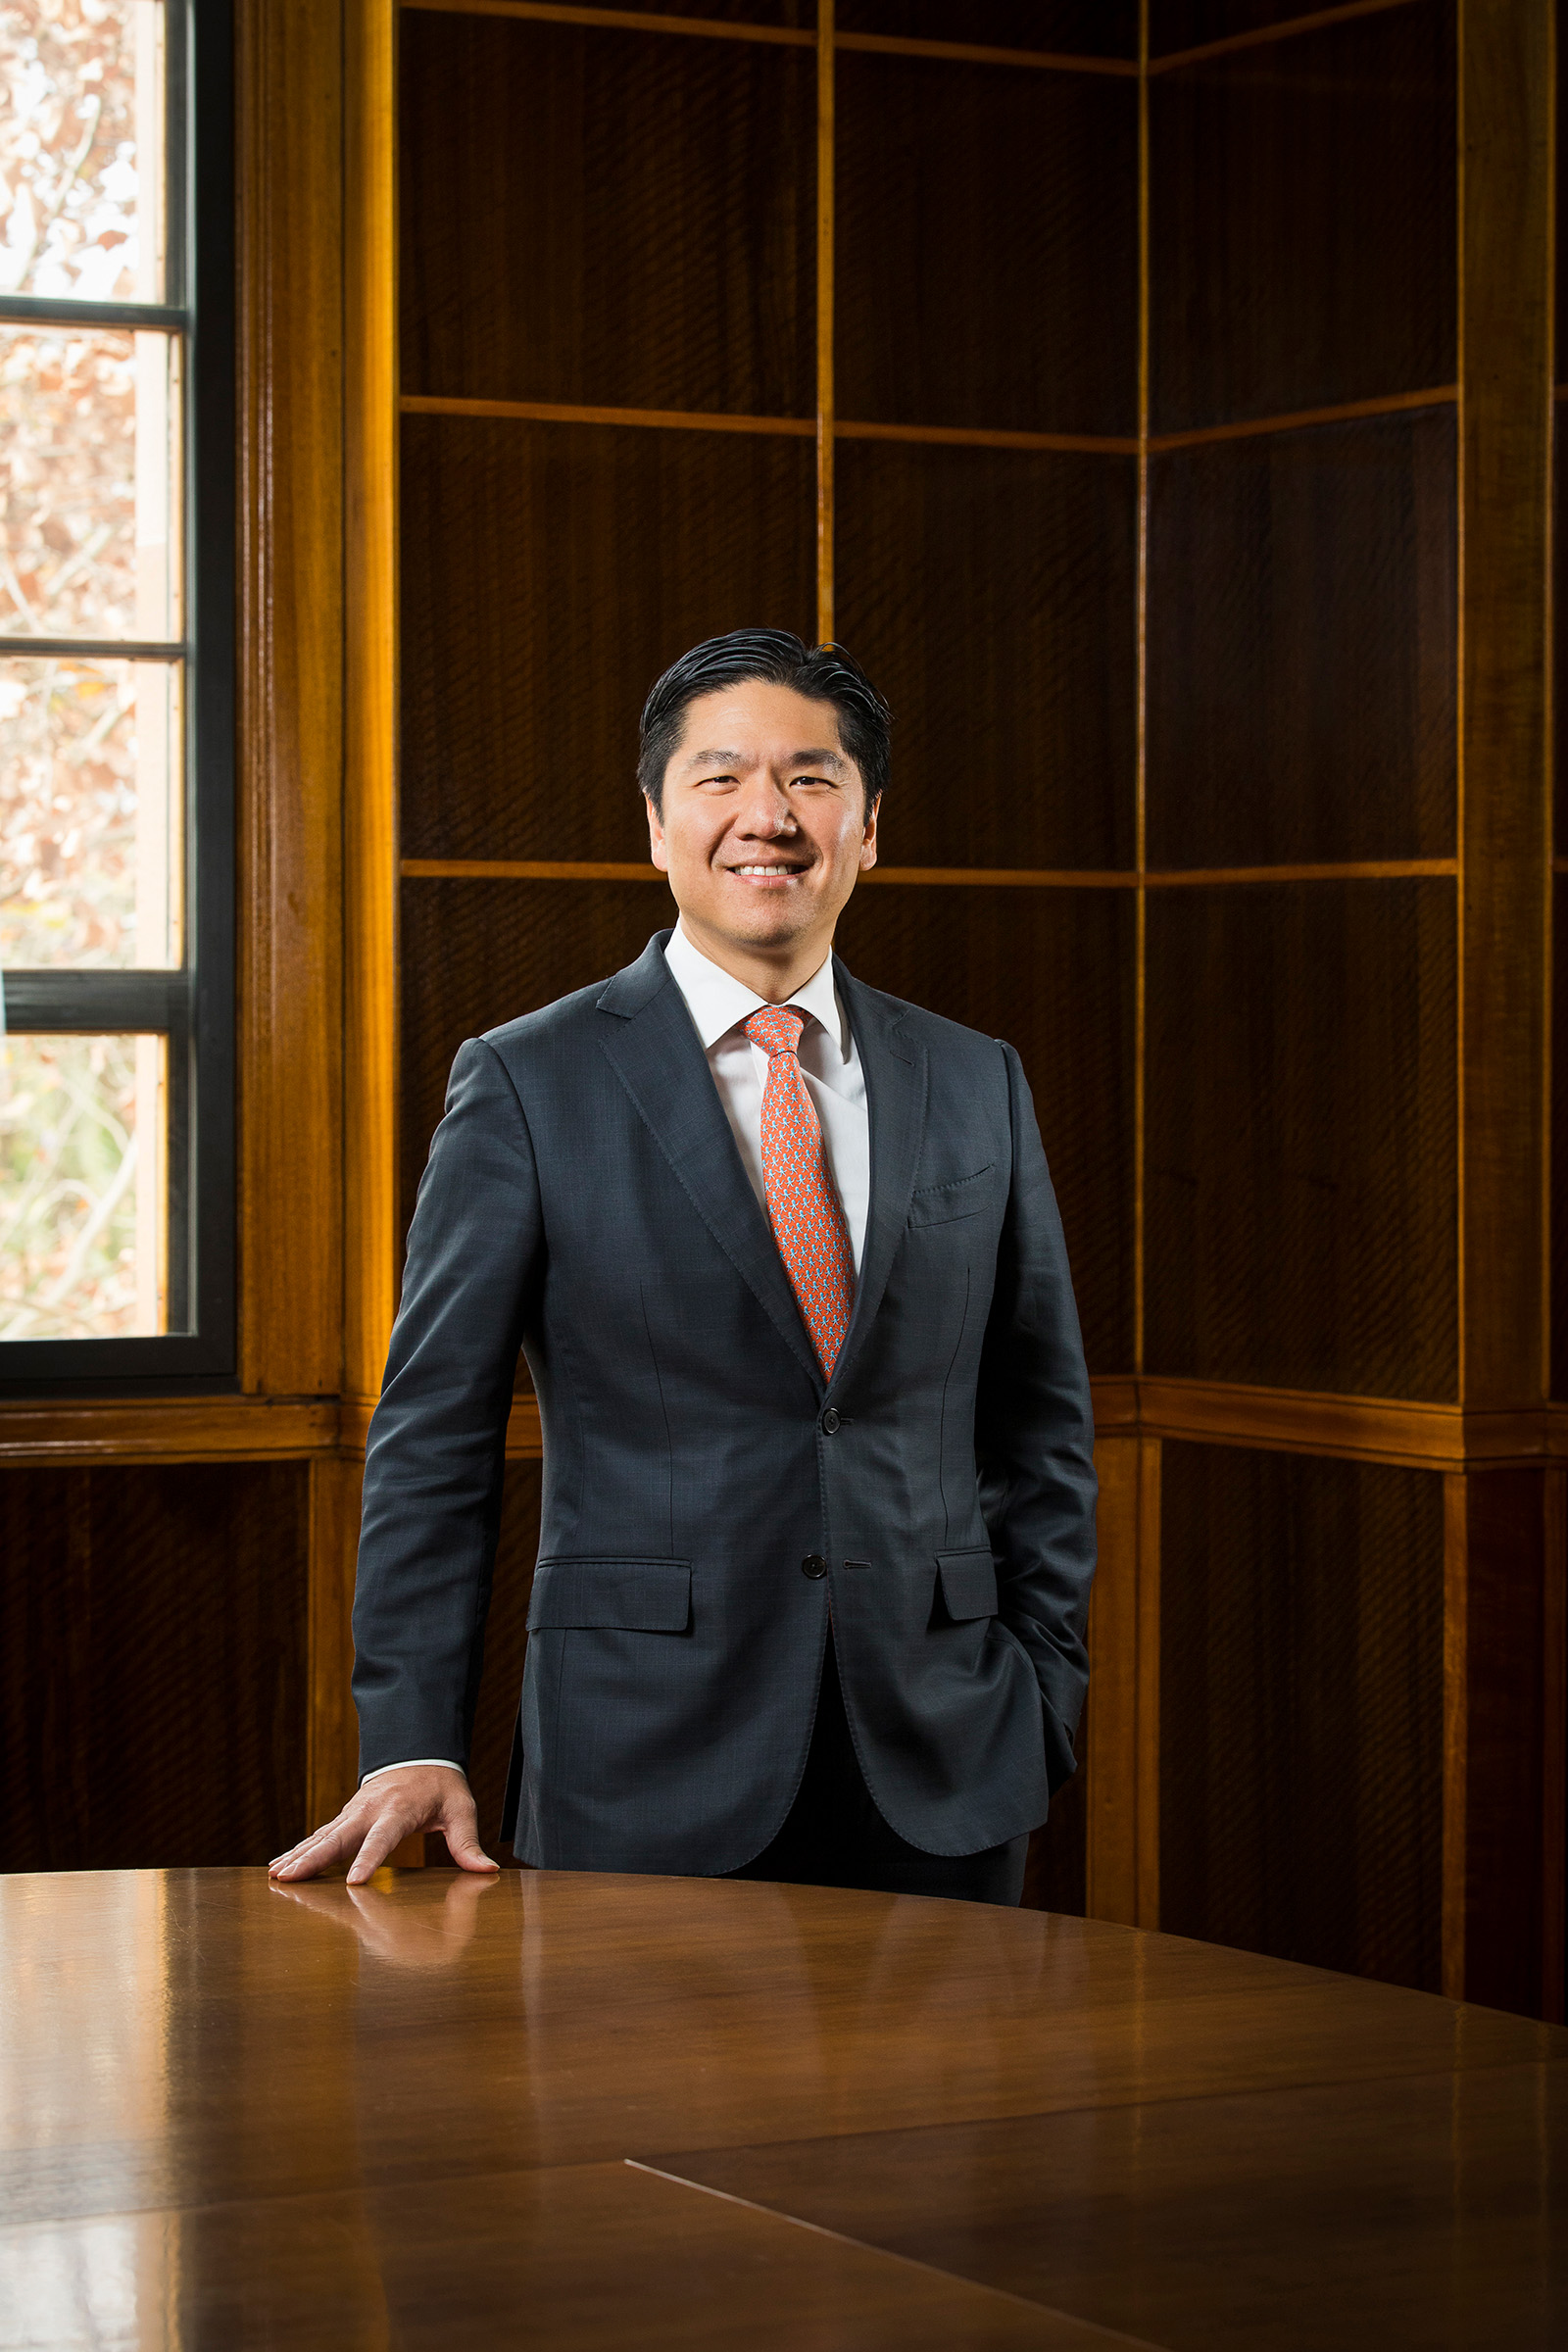 Corporate editorial annual report photography Seng Huang Lee smiling standing hand on pocket in boardroom